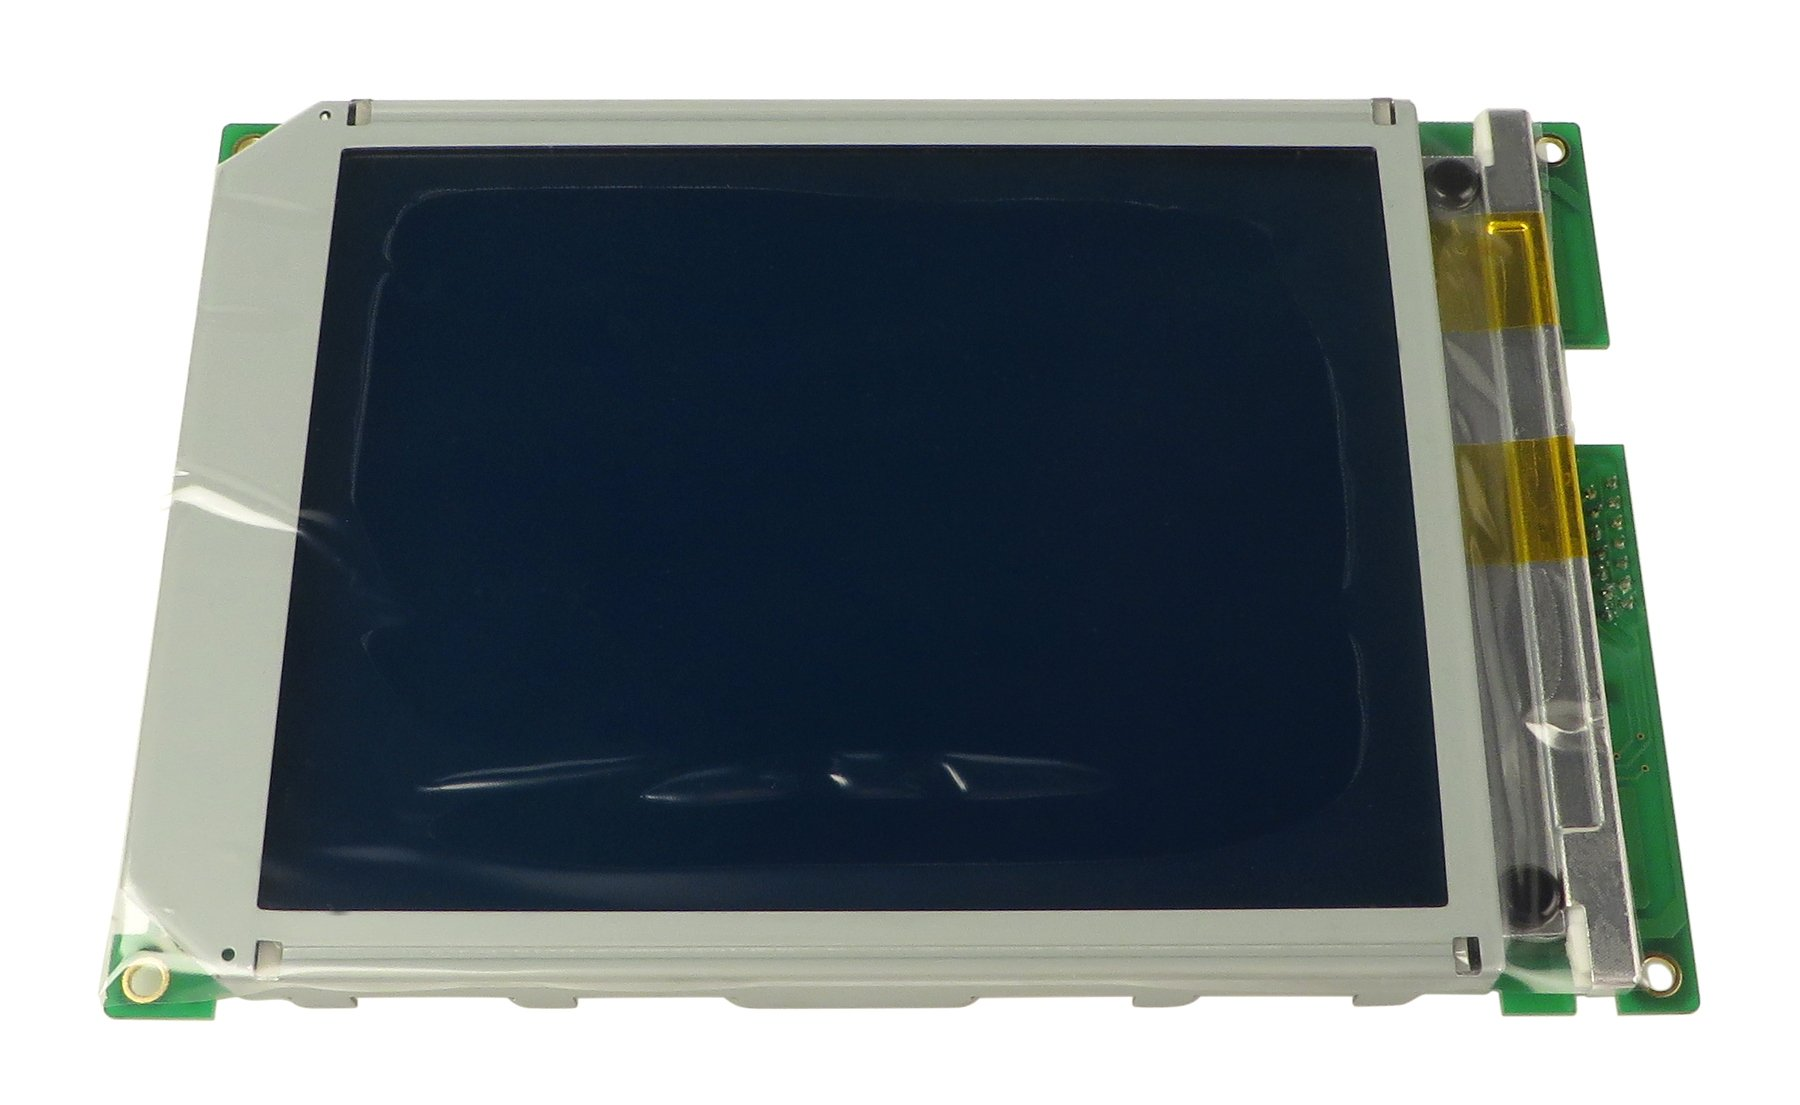 LCD Display for DM4800